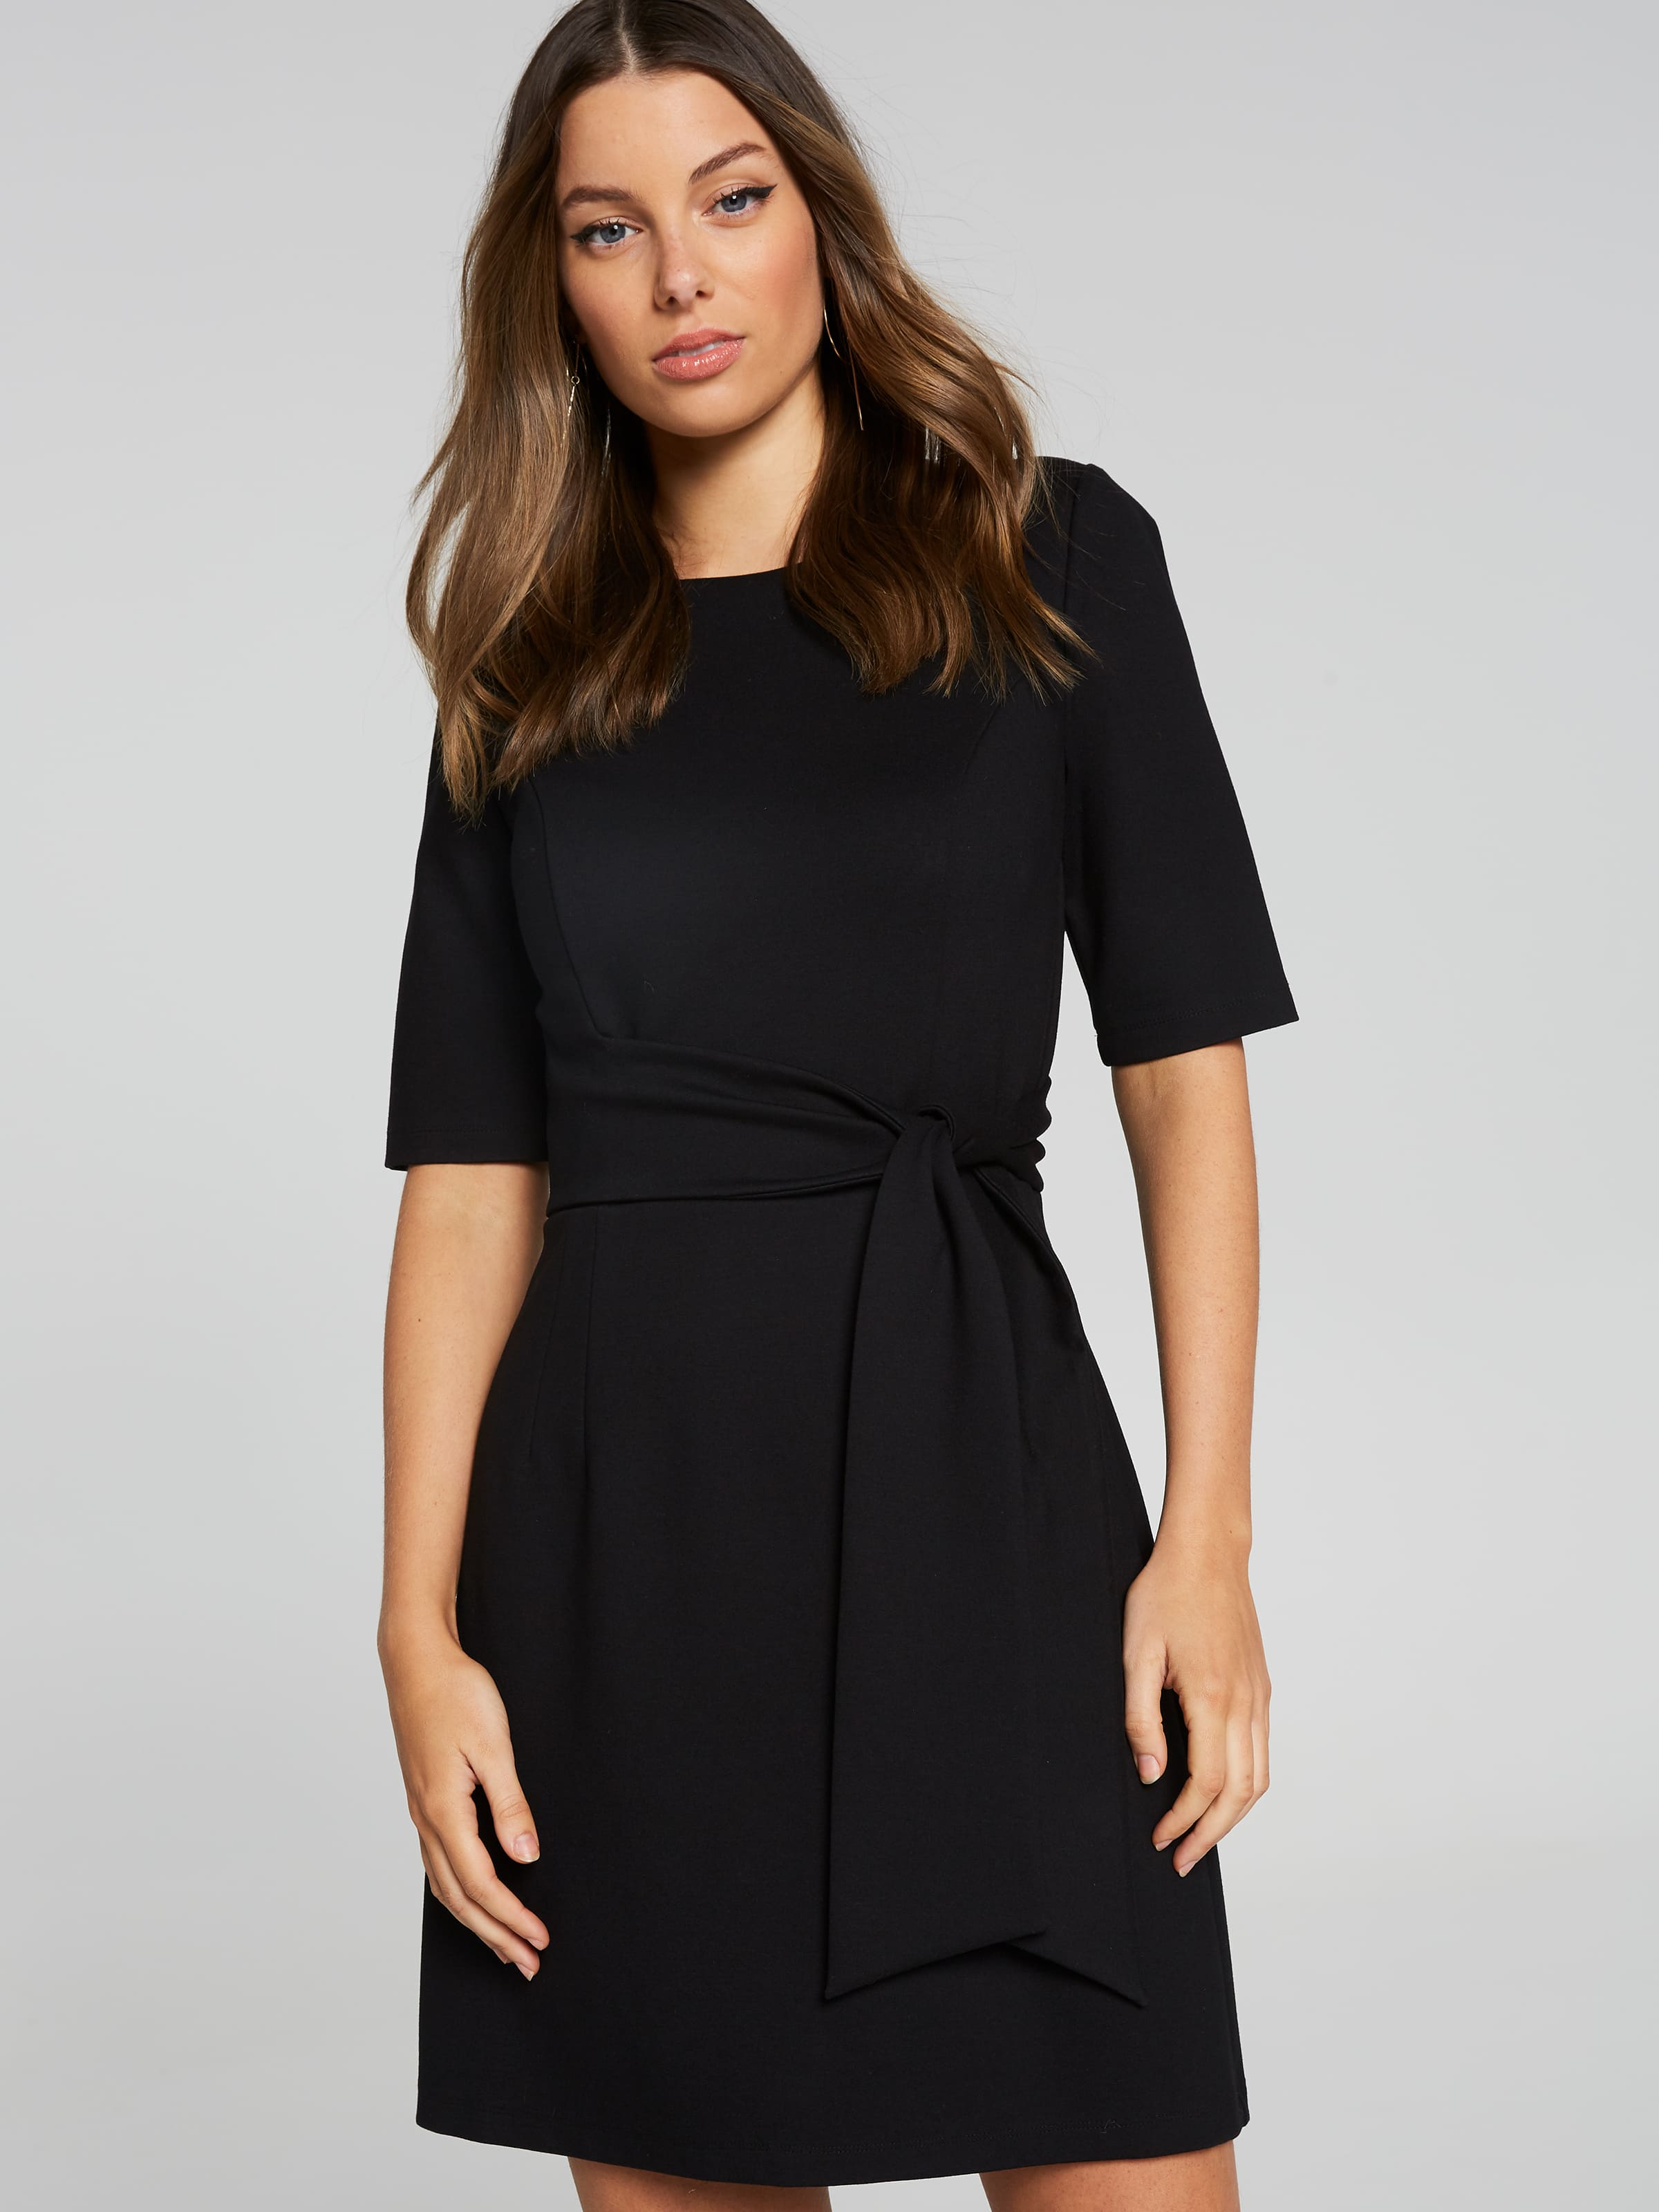 Midtown City Ponte Dress